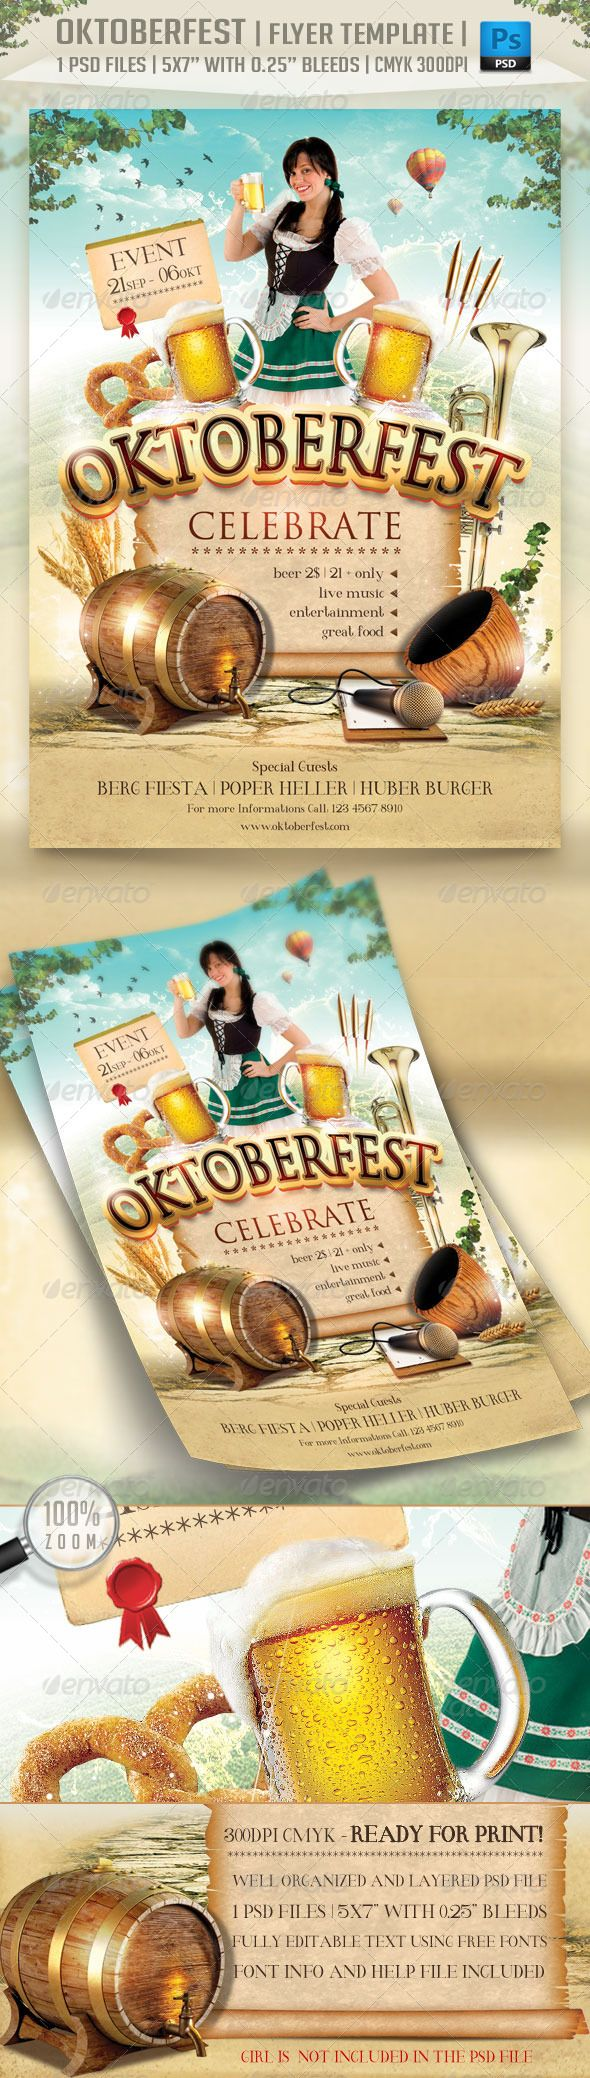 best images about flyers disco club party oktoberfest flyer template